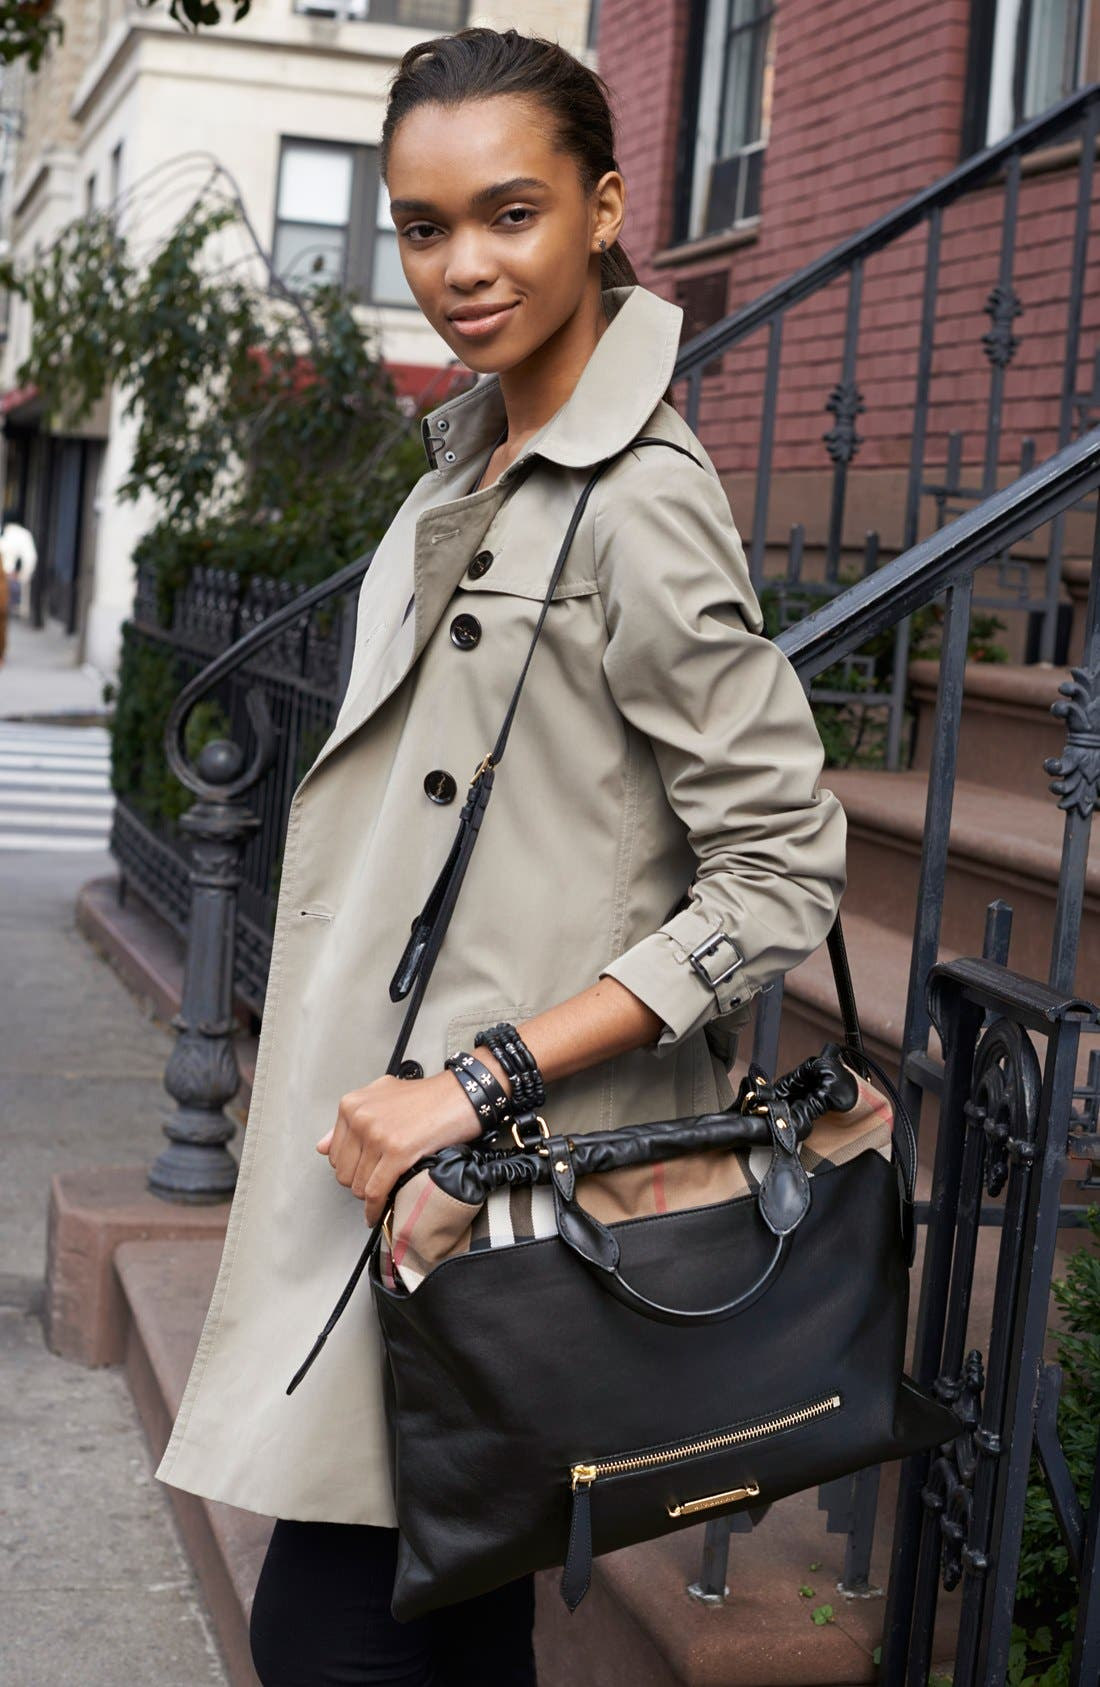 Alternate Image 1 Selected - Burberry Bag, Burberry London Trench & Burberry Brit Tee, Pants